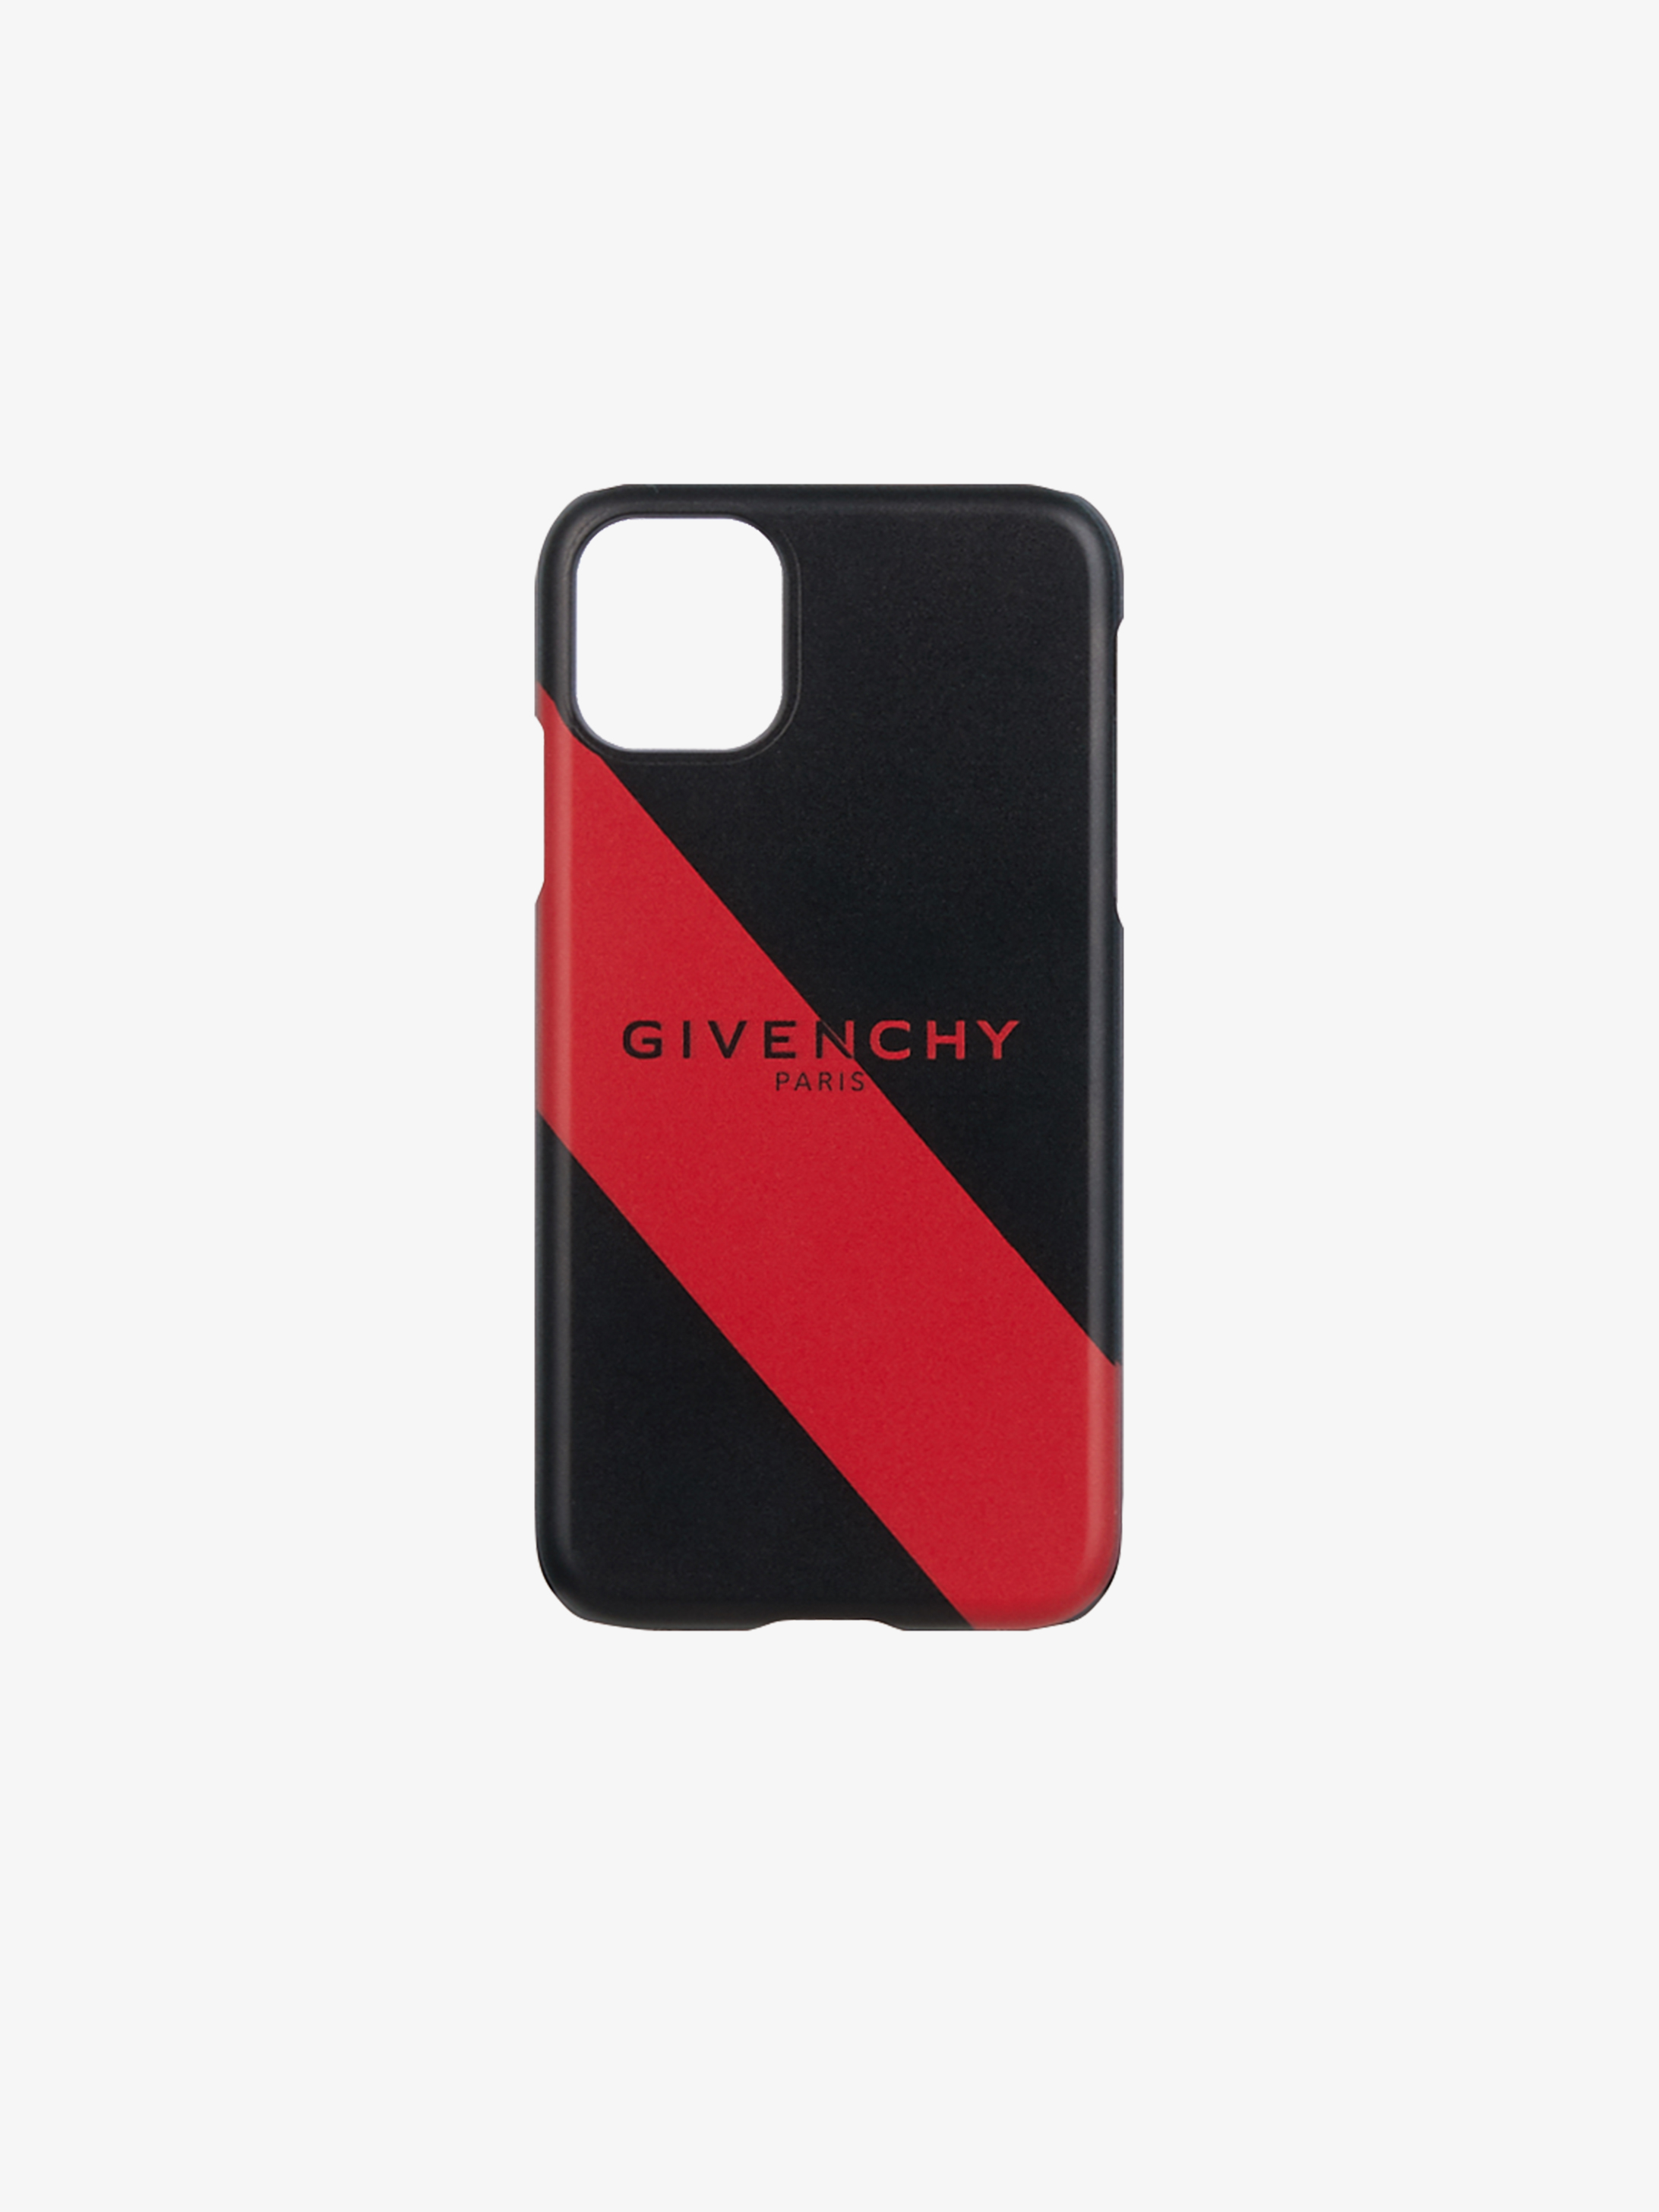 GIVENCHY PARIS 11 iPhone case